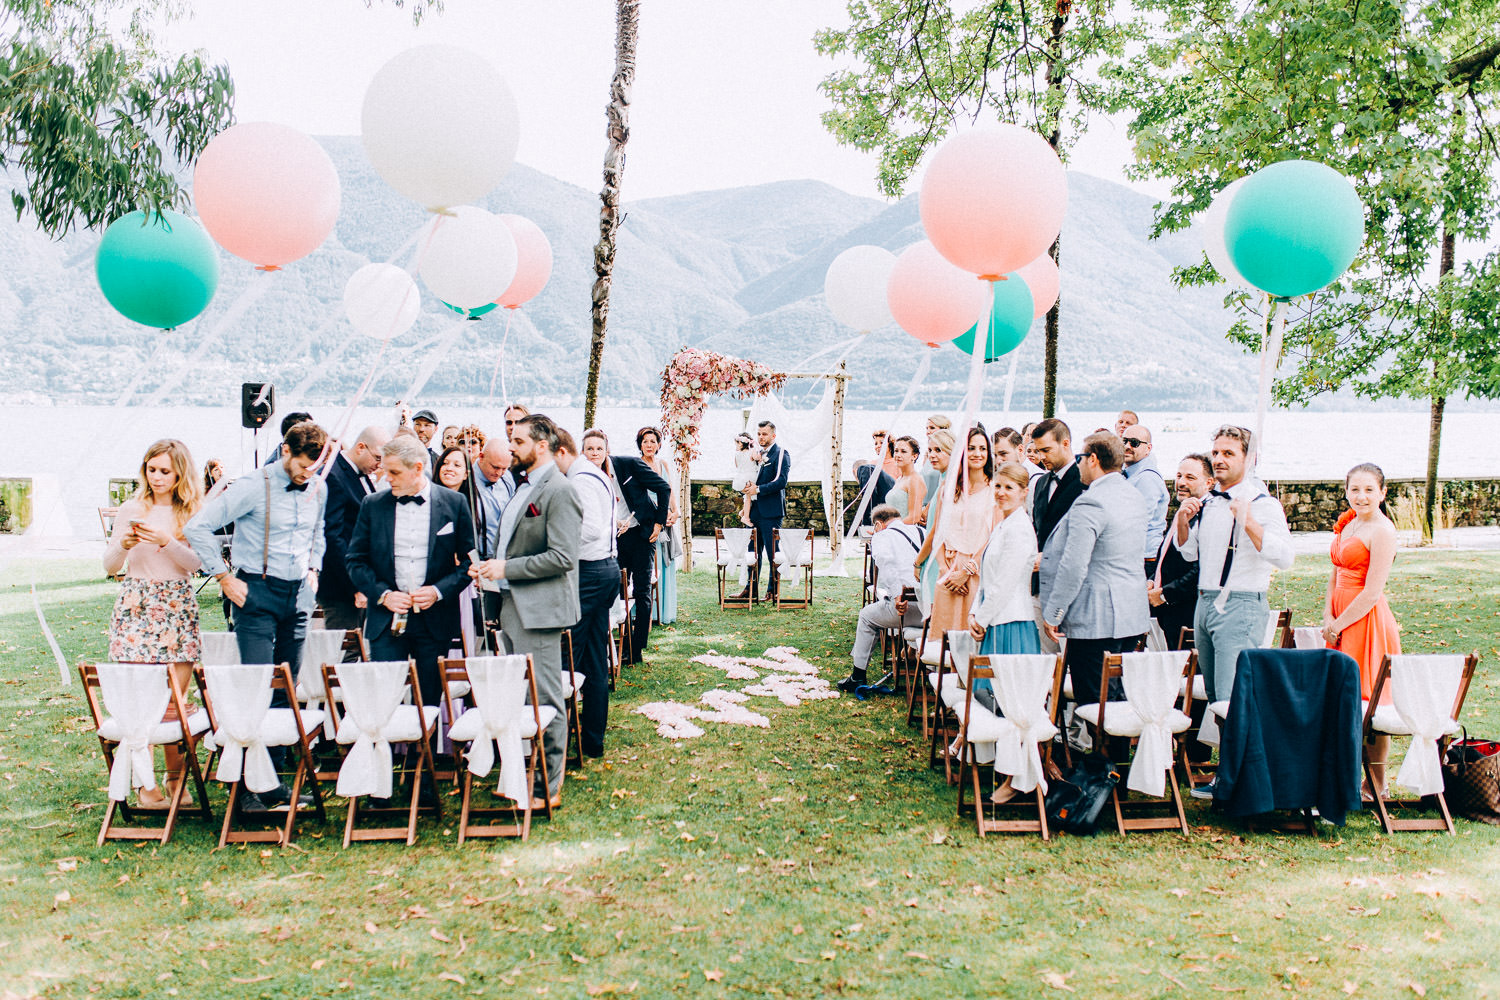 davidandkathrin-com-ticino-brissago-wedding-photographer-074